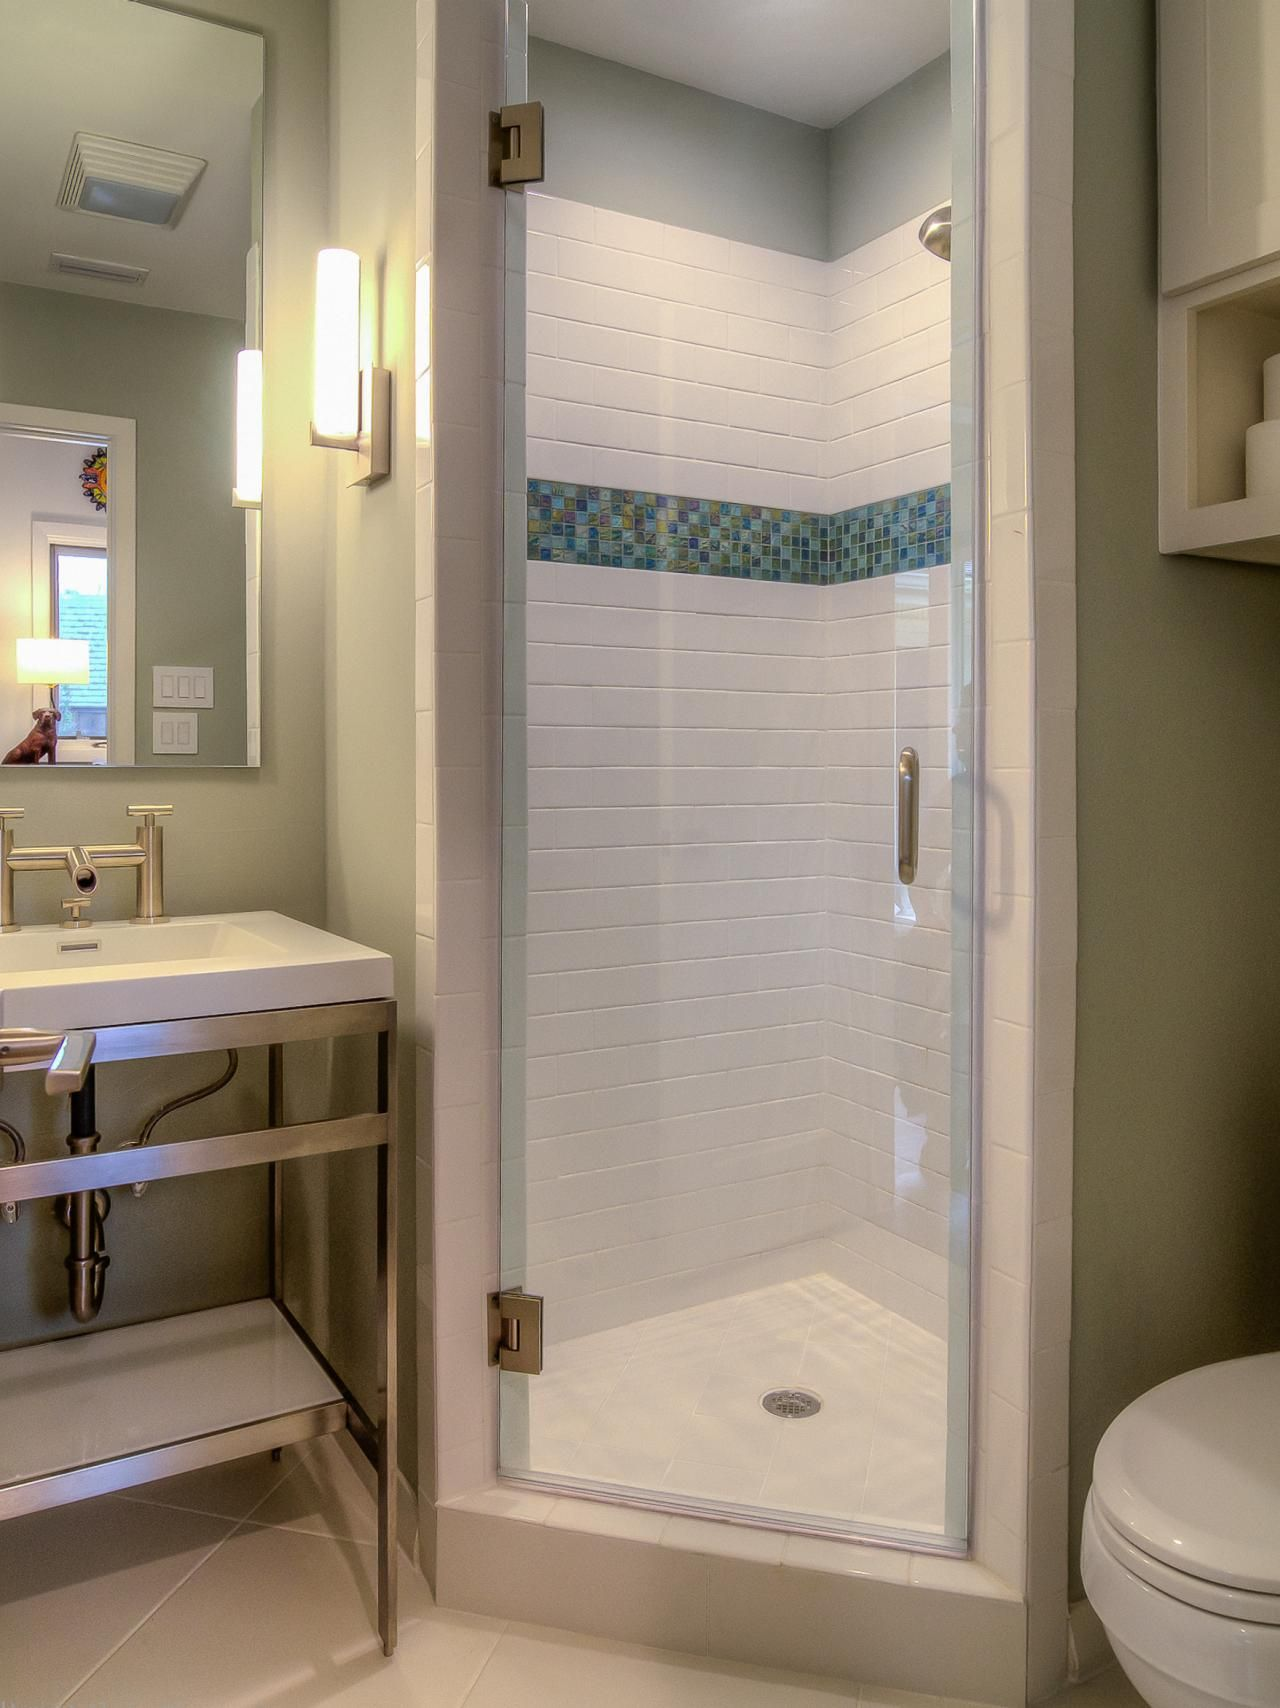 Photos Of Small Bathrooms A Stall Shower Fits Perfectly In The Corner Of This Small